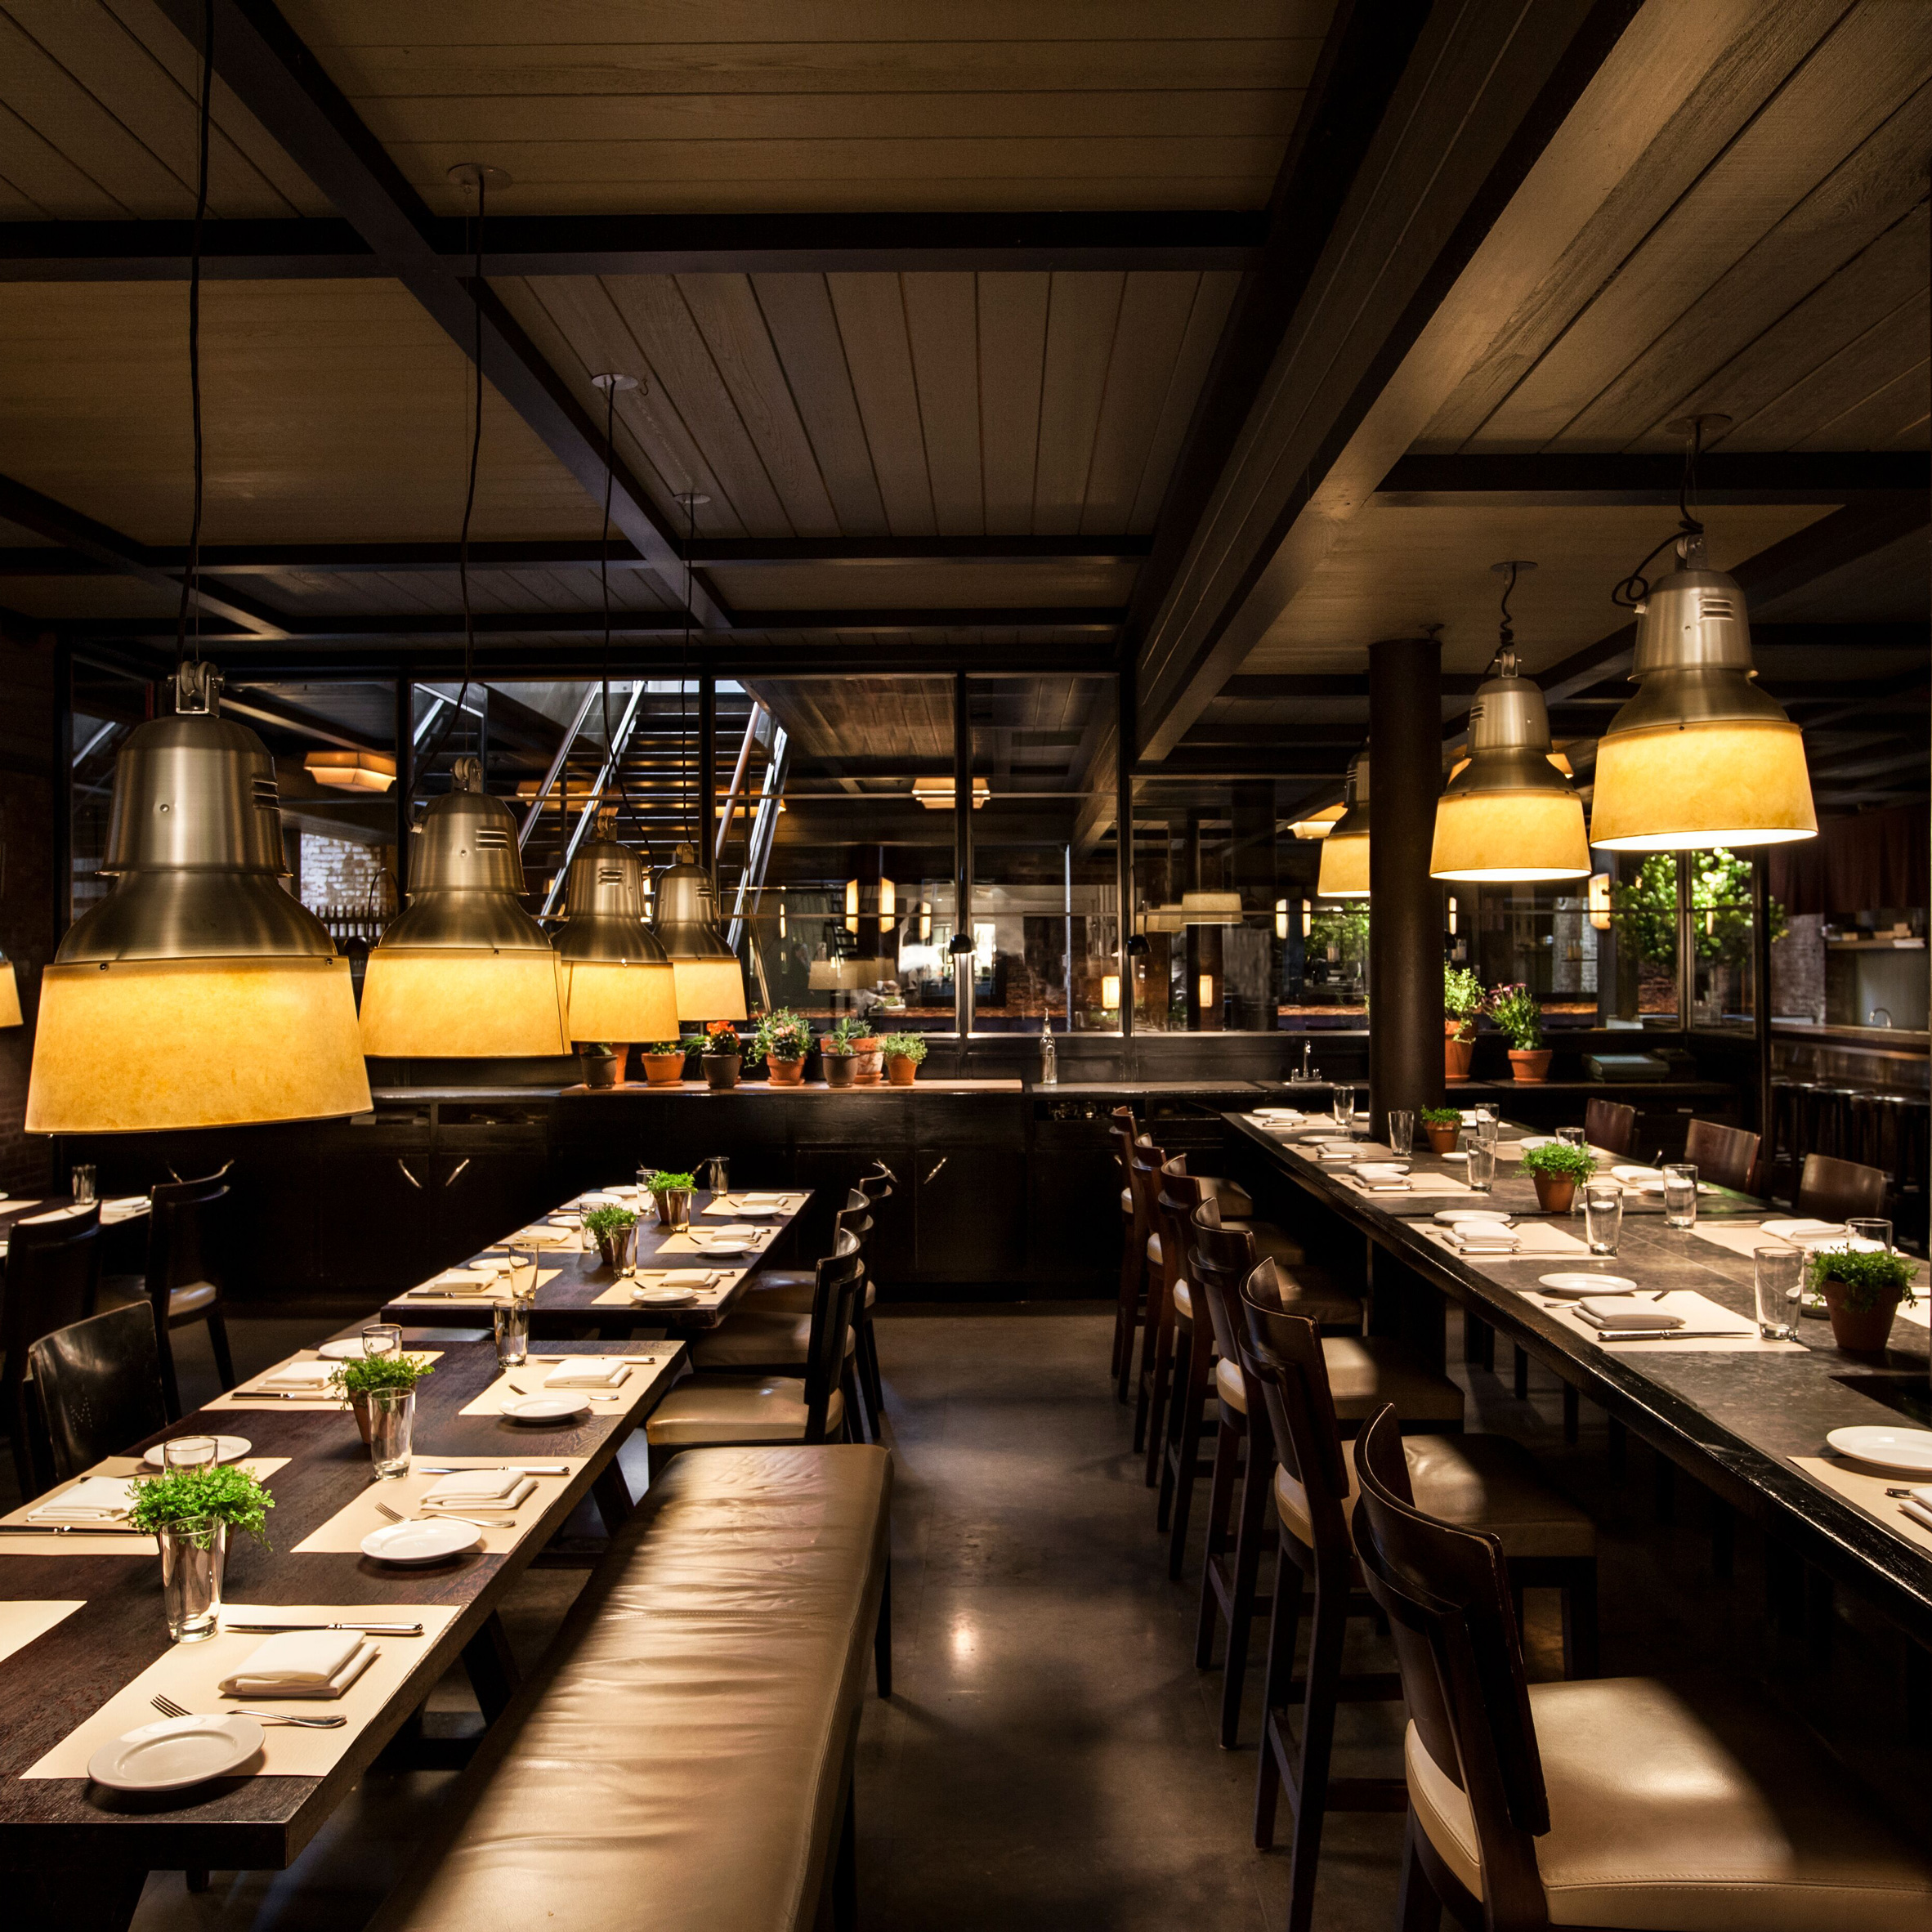 restaurant interiors and architecture | dezeen